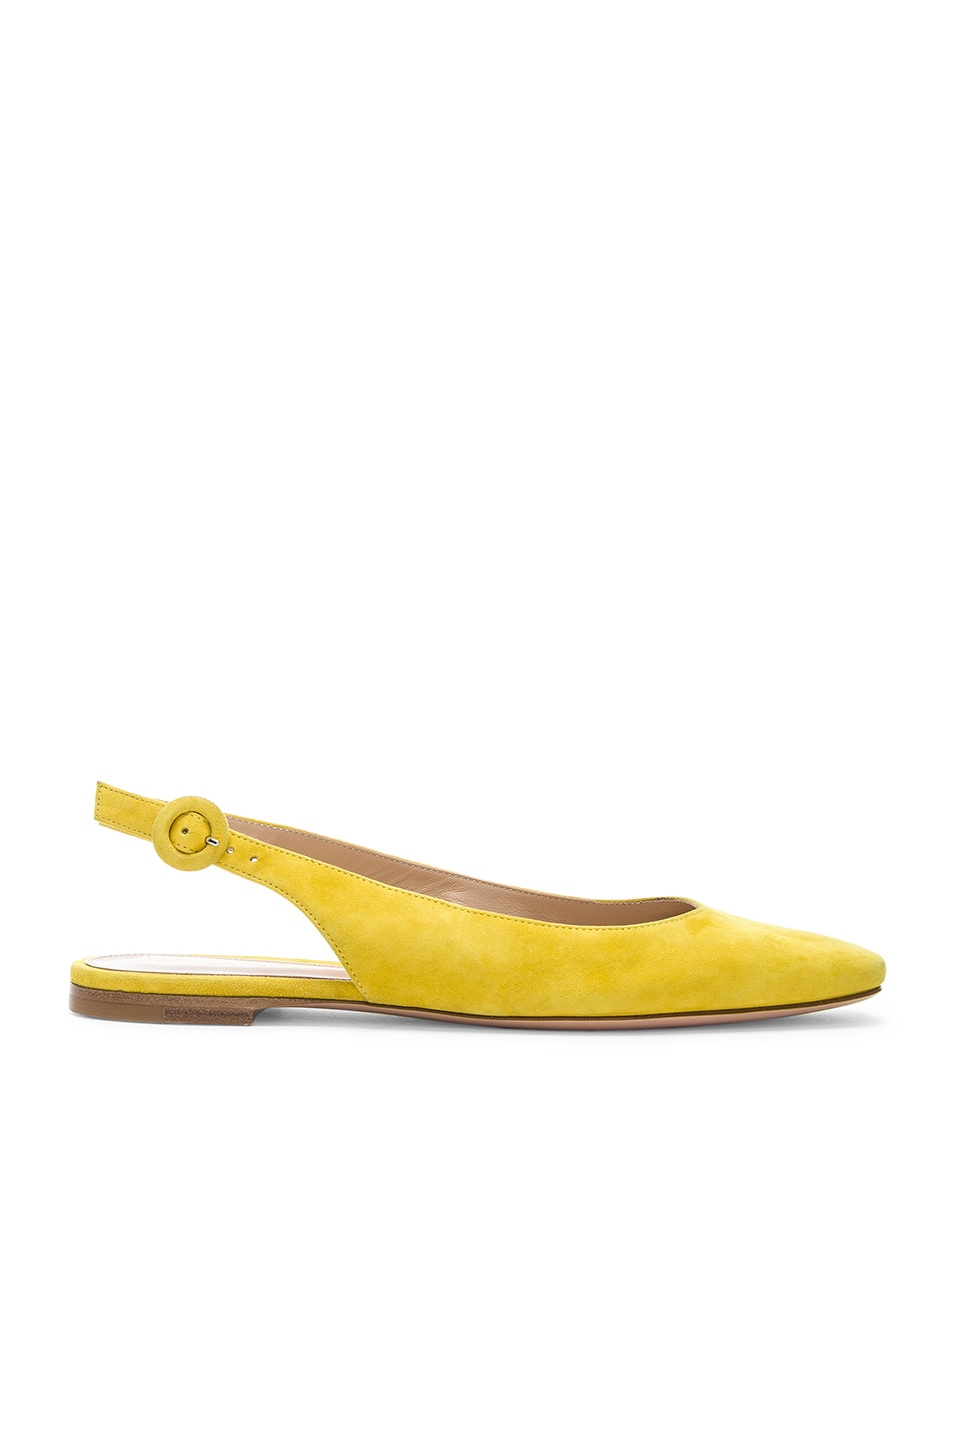 Image 1 of Gianvito Rossi Tish Slingback Flat in Mimosa